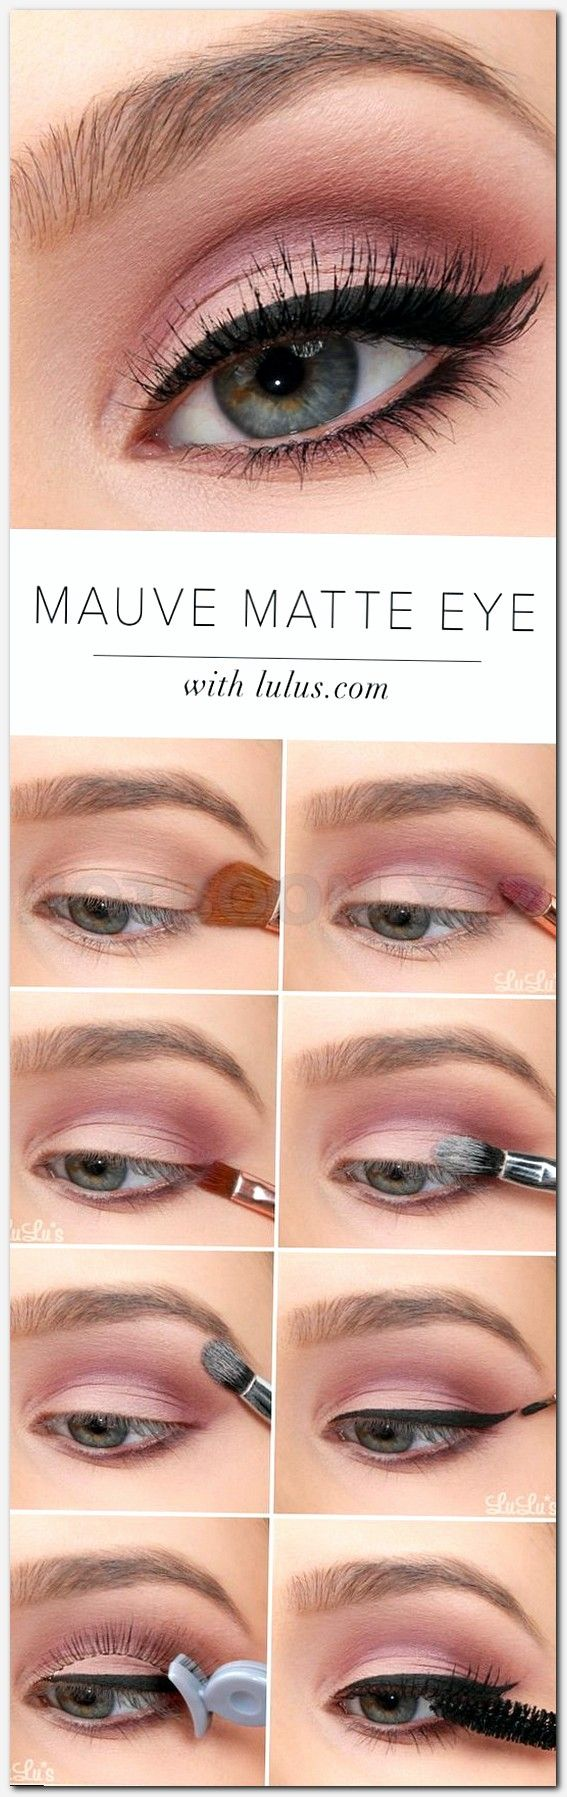 makeup quiz questions, make up of girls, steps on how to apply make up, highlighter quotes makeup, american rhinologic society, almay commercial, makeup by myself, beauty source locations, how to apply a smokey eyeshadow, makeup smoking eyes, color pop cosmetics store, how to make a makeup base, lipstick colors 2017, easy smokey eye look, beauty product retailers, makeup dressup games